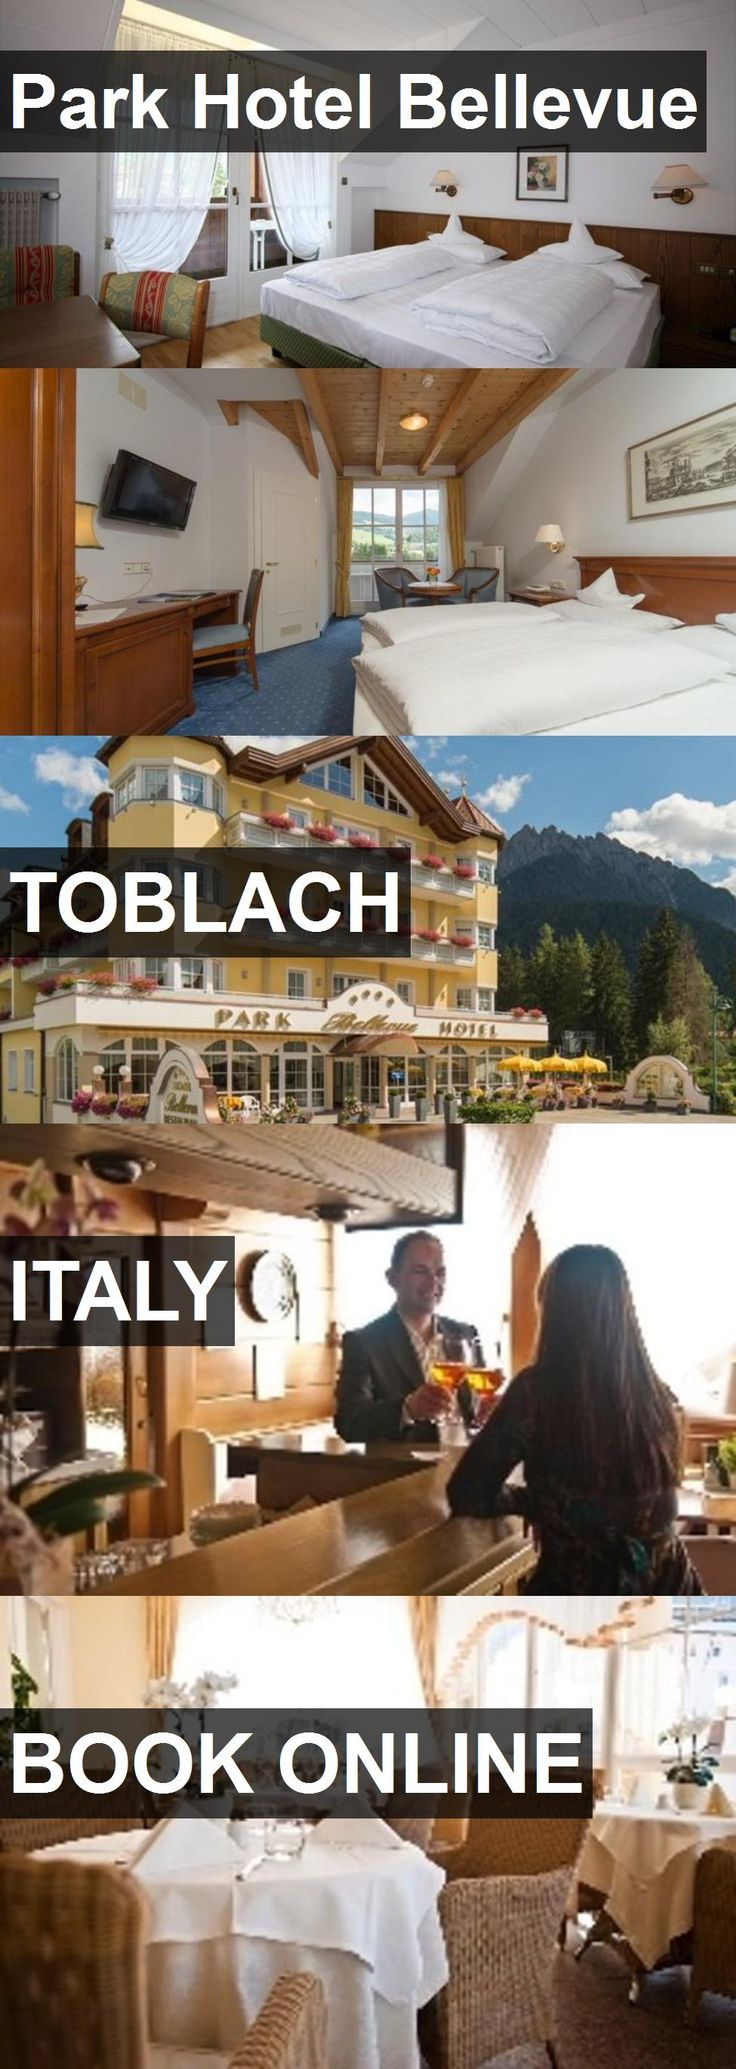 Park Hotel Bellevue in Toblach, Italy. For more information, photos, reviews and best prices please follow the link. #Italy #Toblach #travel #vacation #hotel